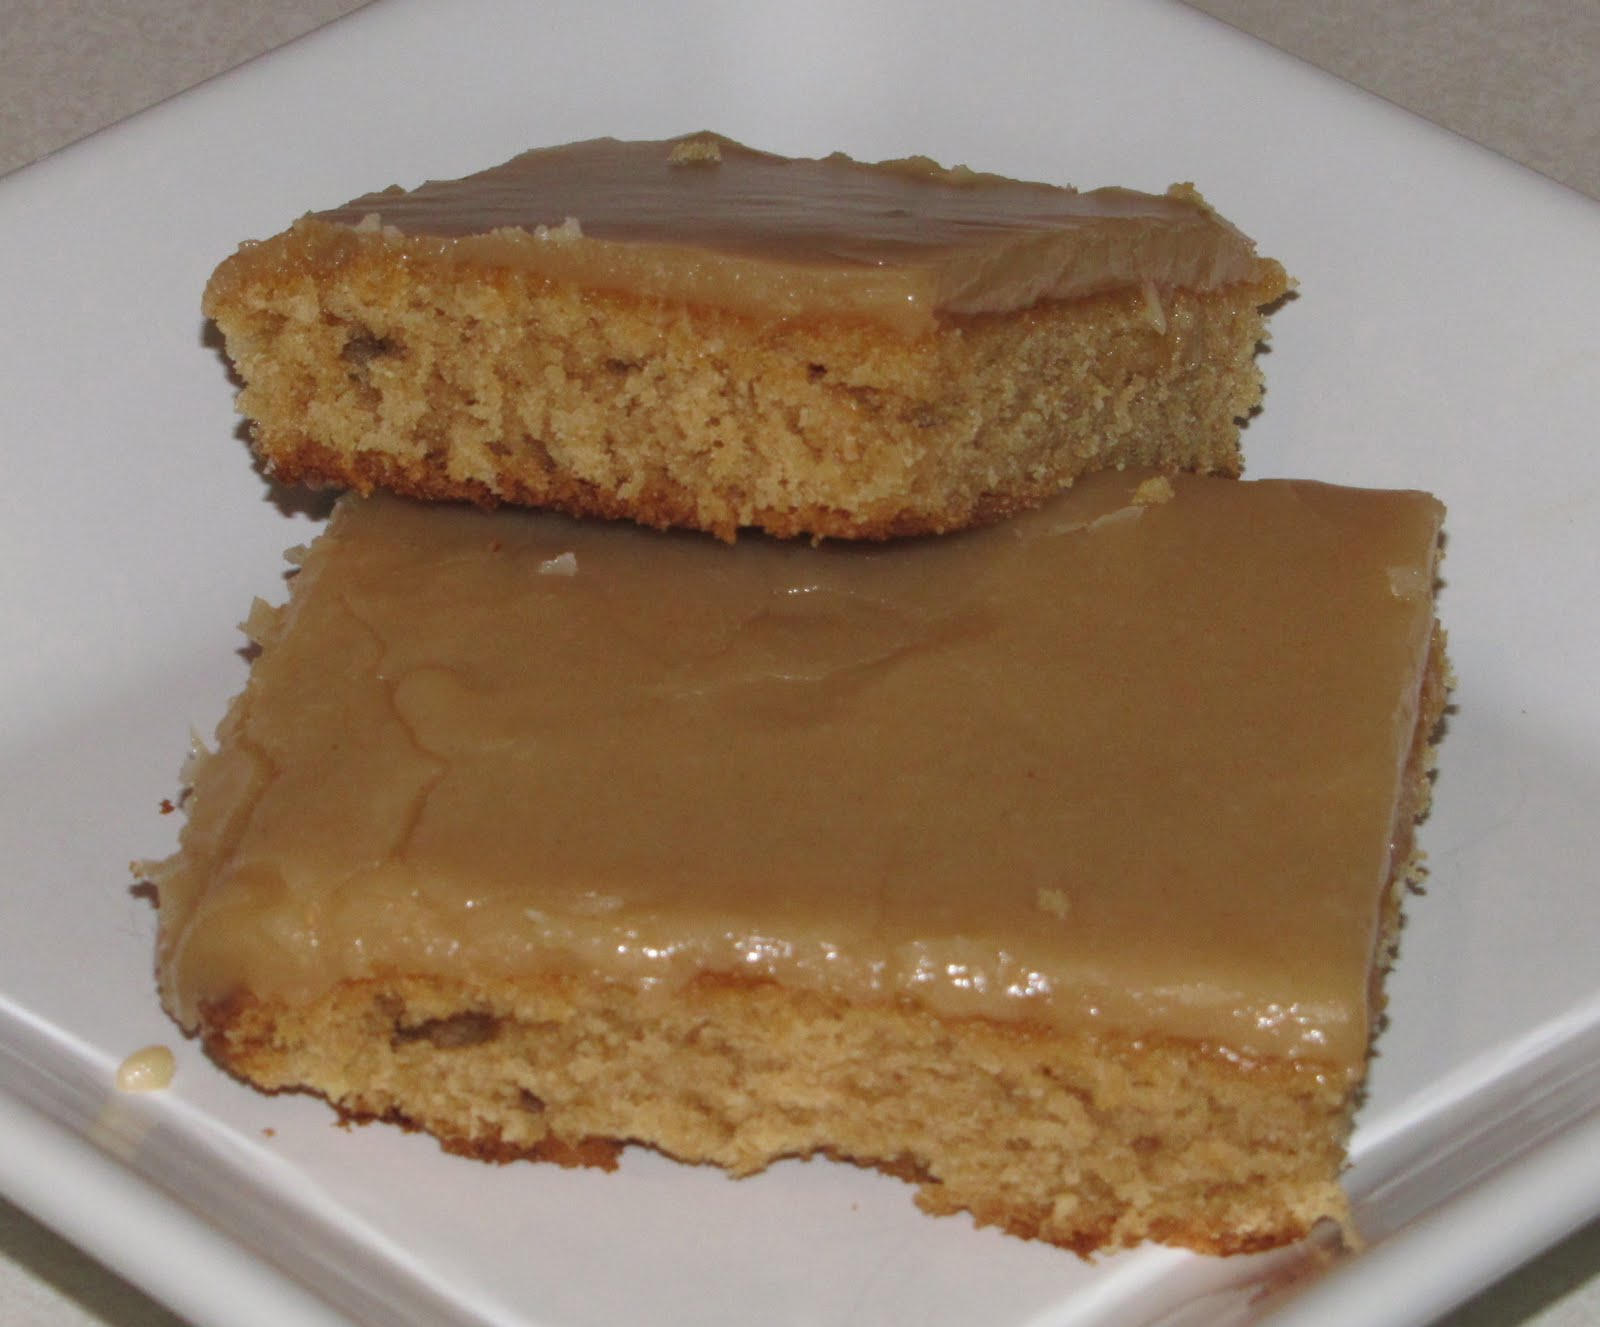 Peanut Butter Cake Made With Yellow Cake Mix